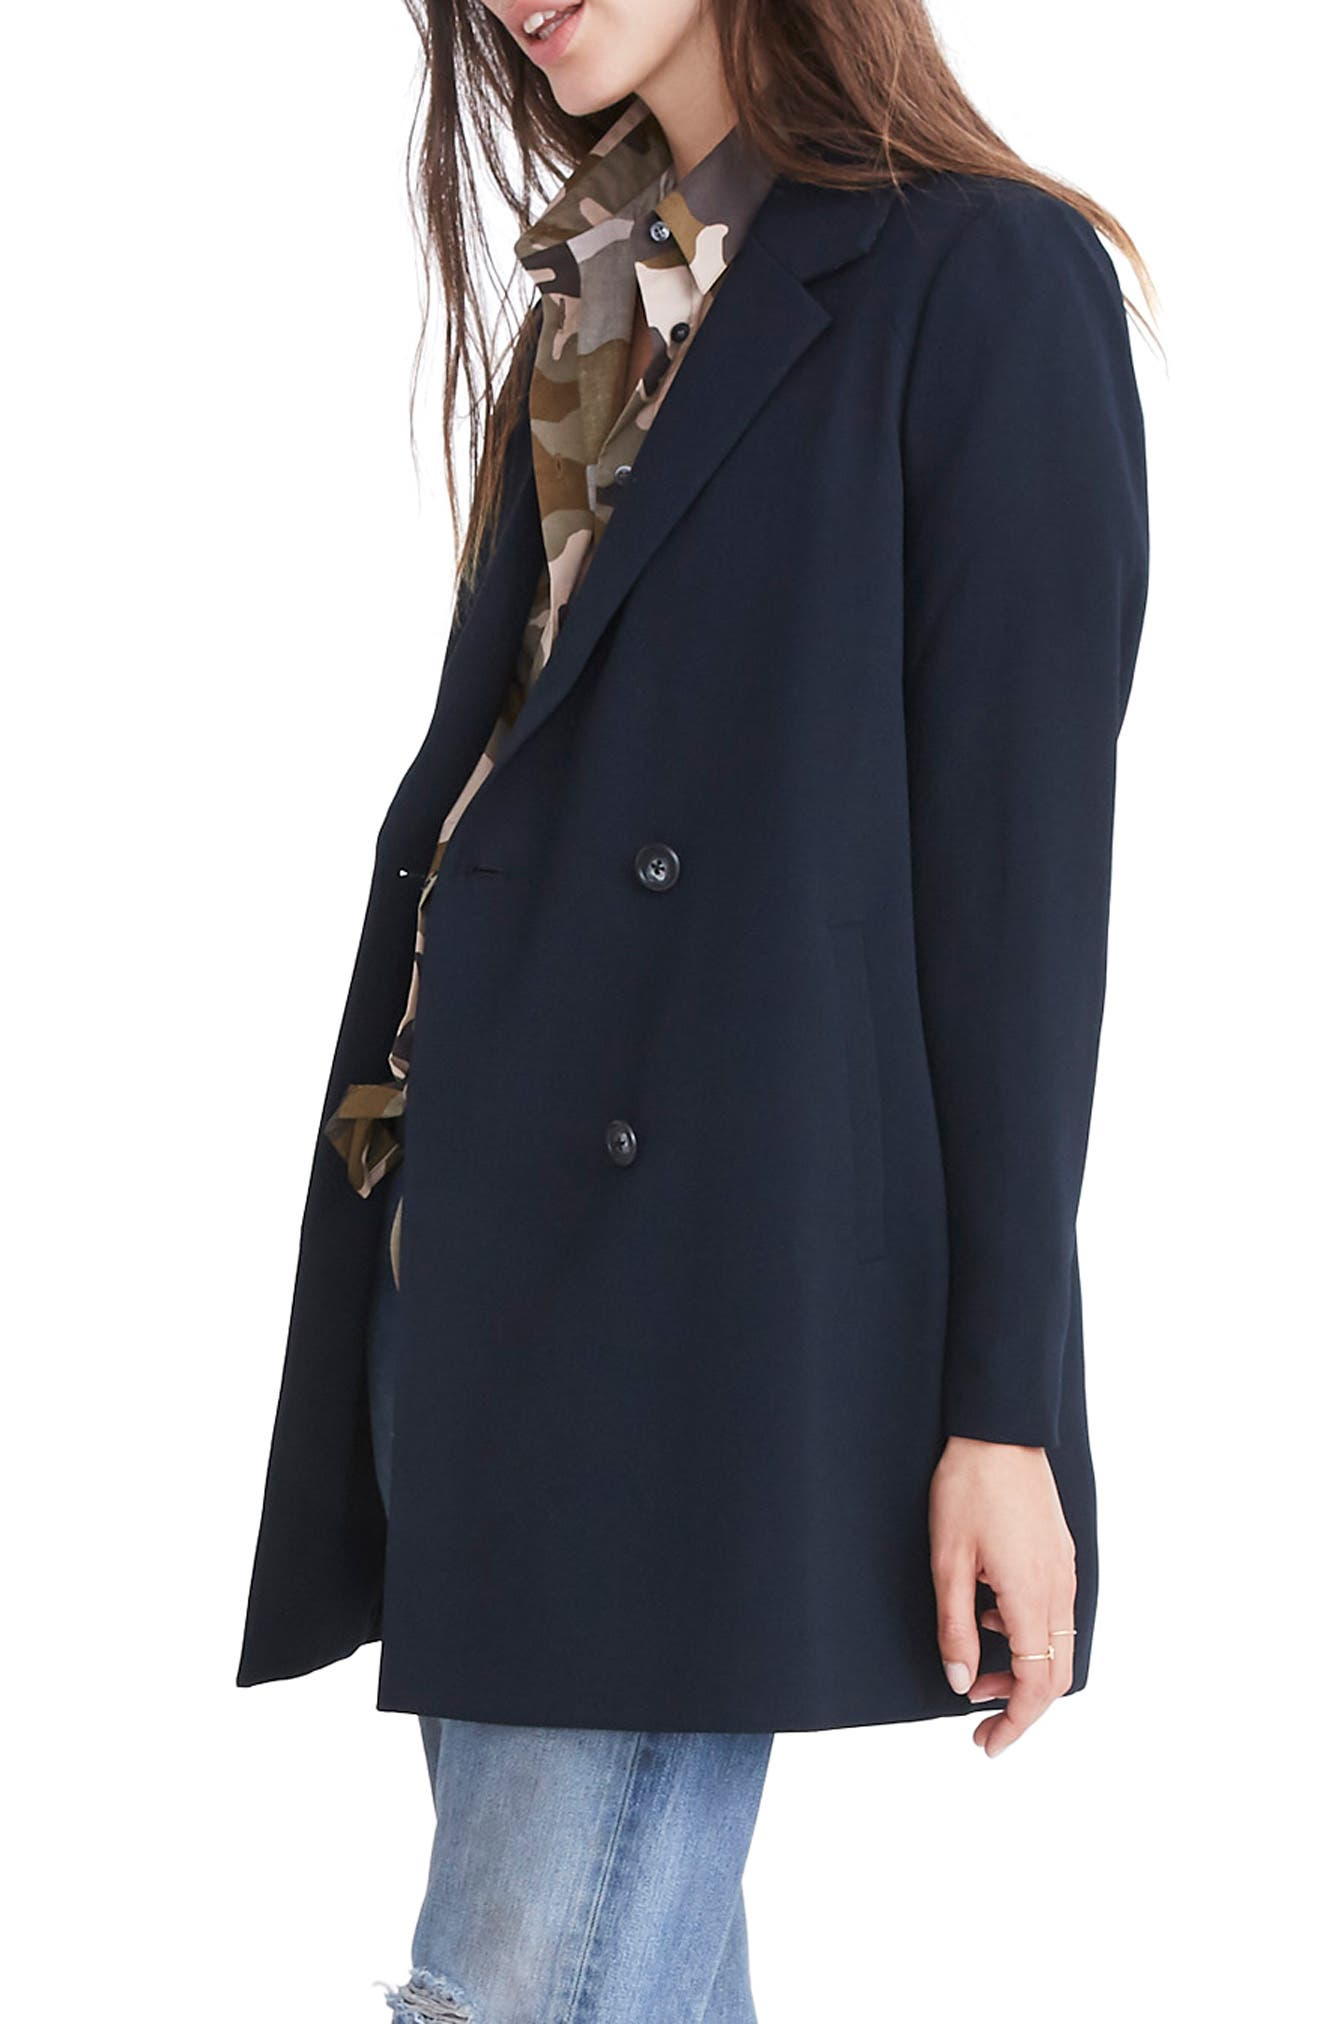 Caldwell Double Breasted Blazer,                             Alternate thumbnail 4, color,                             TRUE BLACK